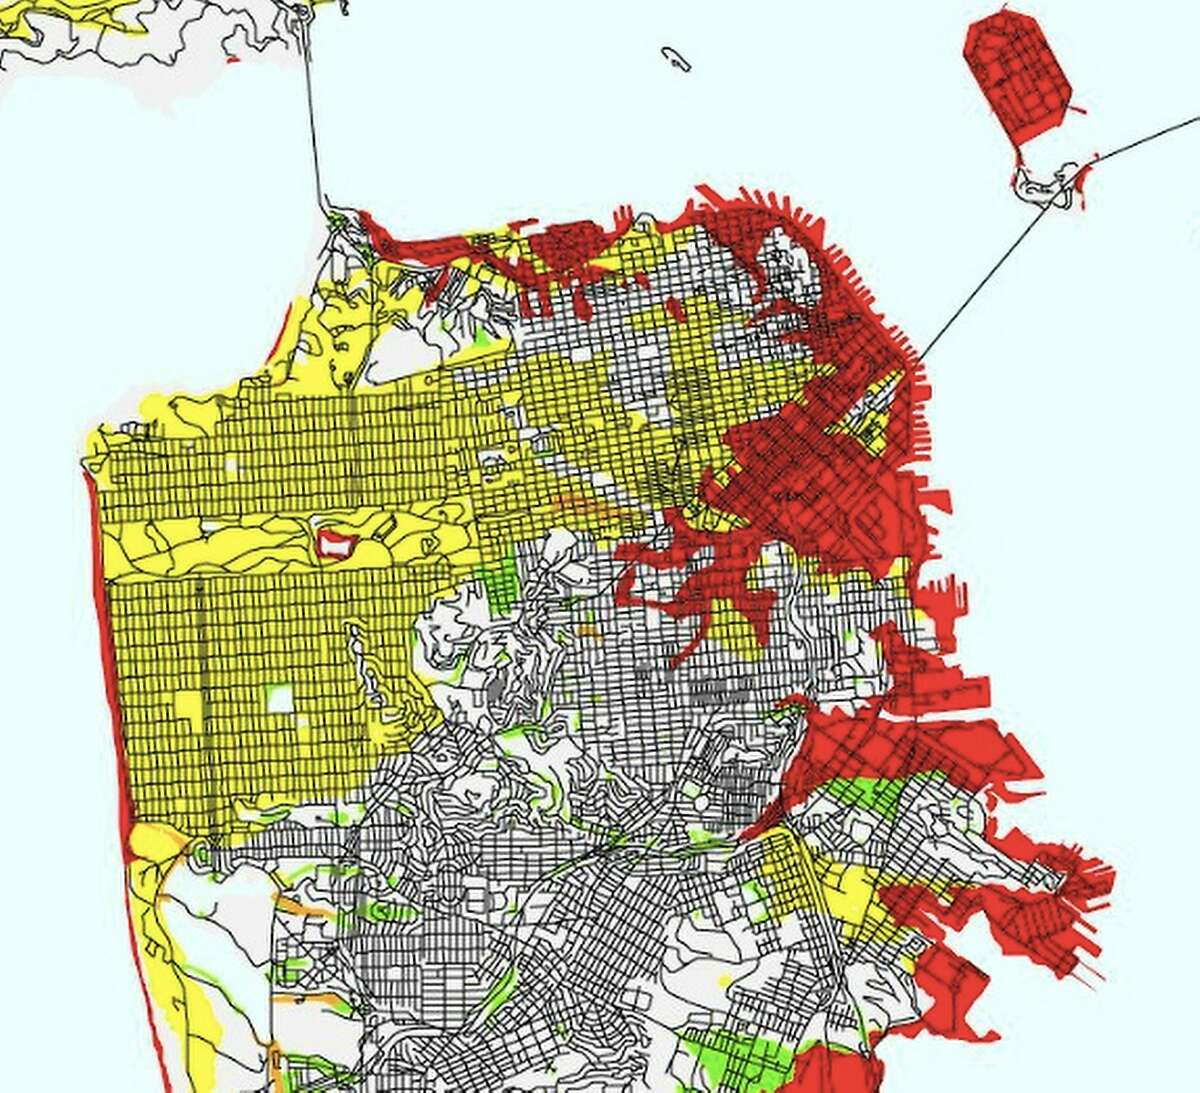 In this USGS liquefaction susceptibility map of San Francisco, areas of very high risk are marked in red, high risk in orange, moderate risk in yellow, low risk in green and very low risk are white.